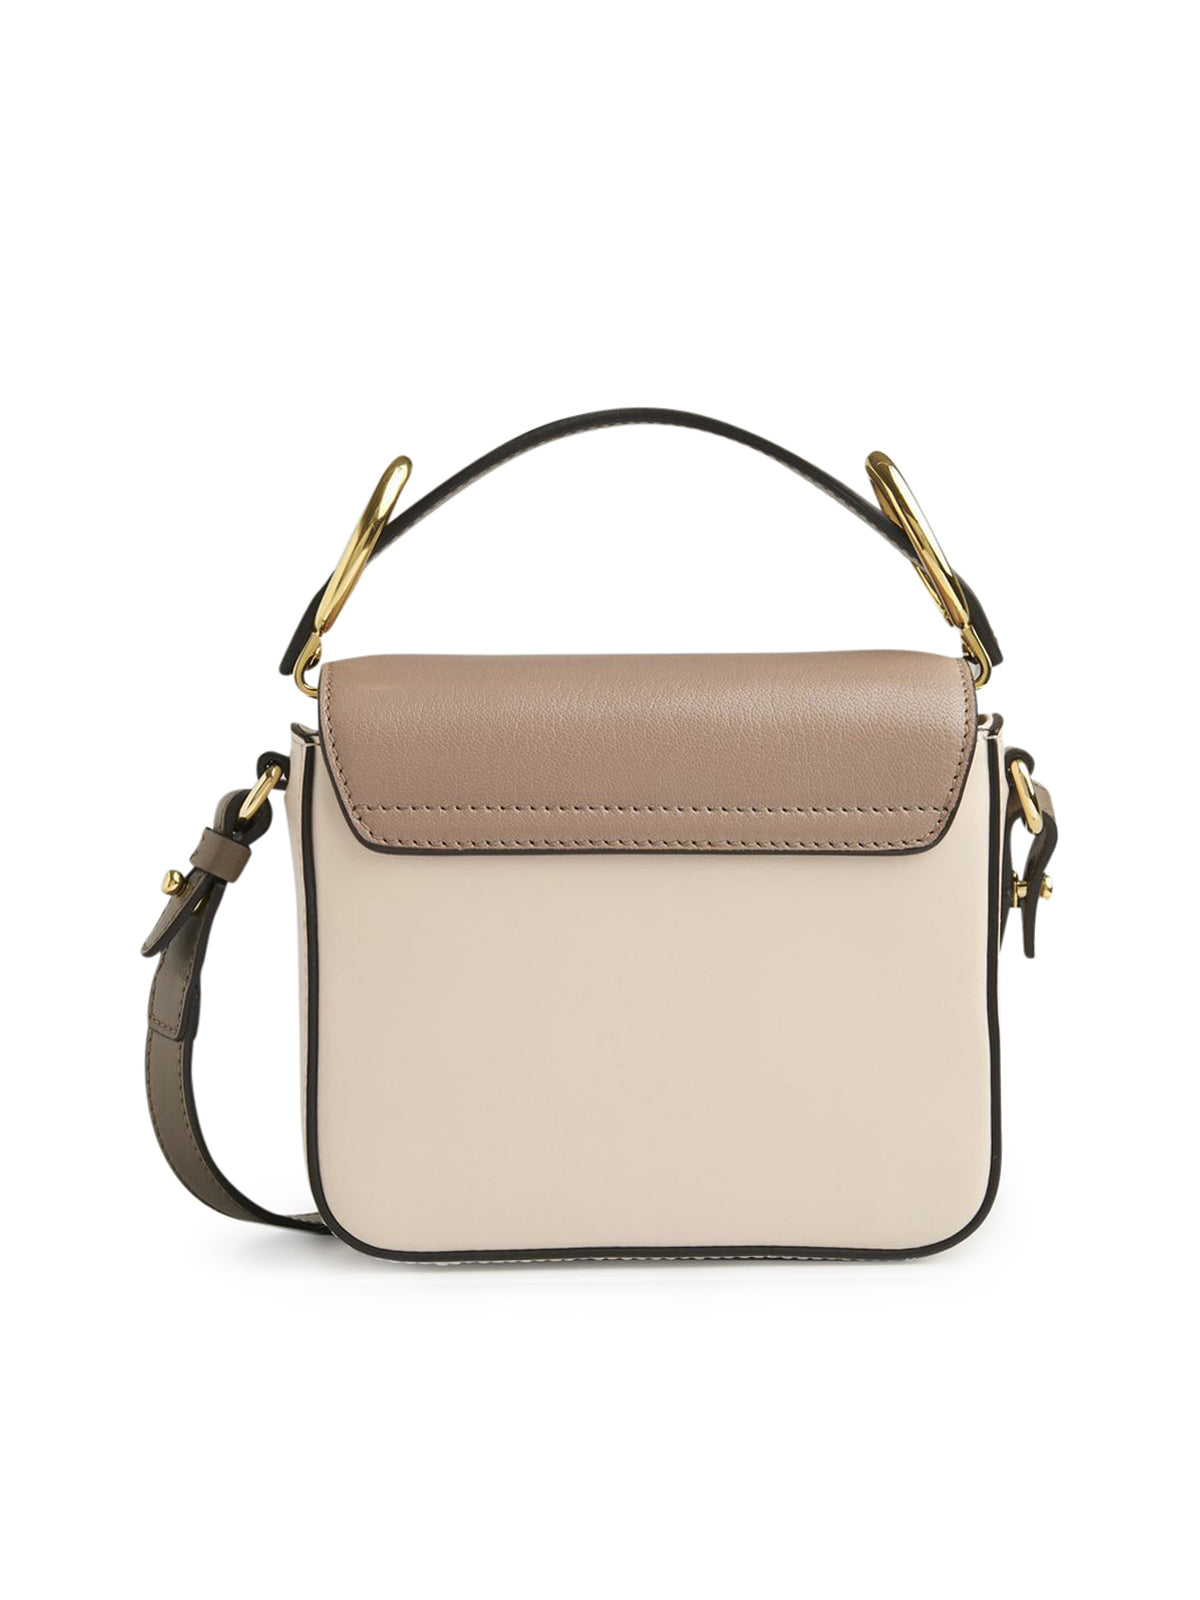 Chloé C mini bag in multicolour